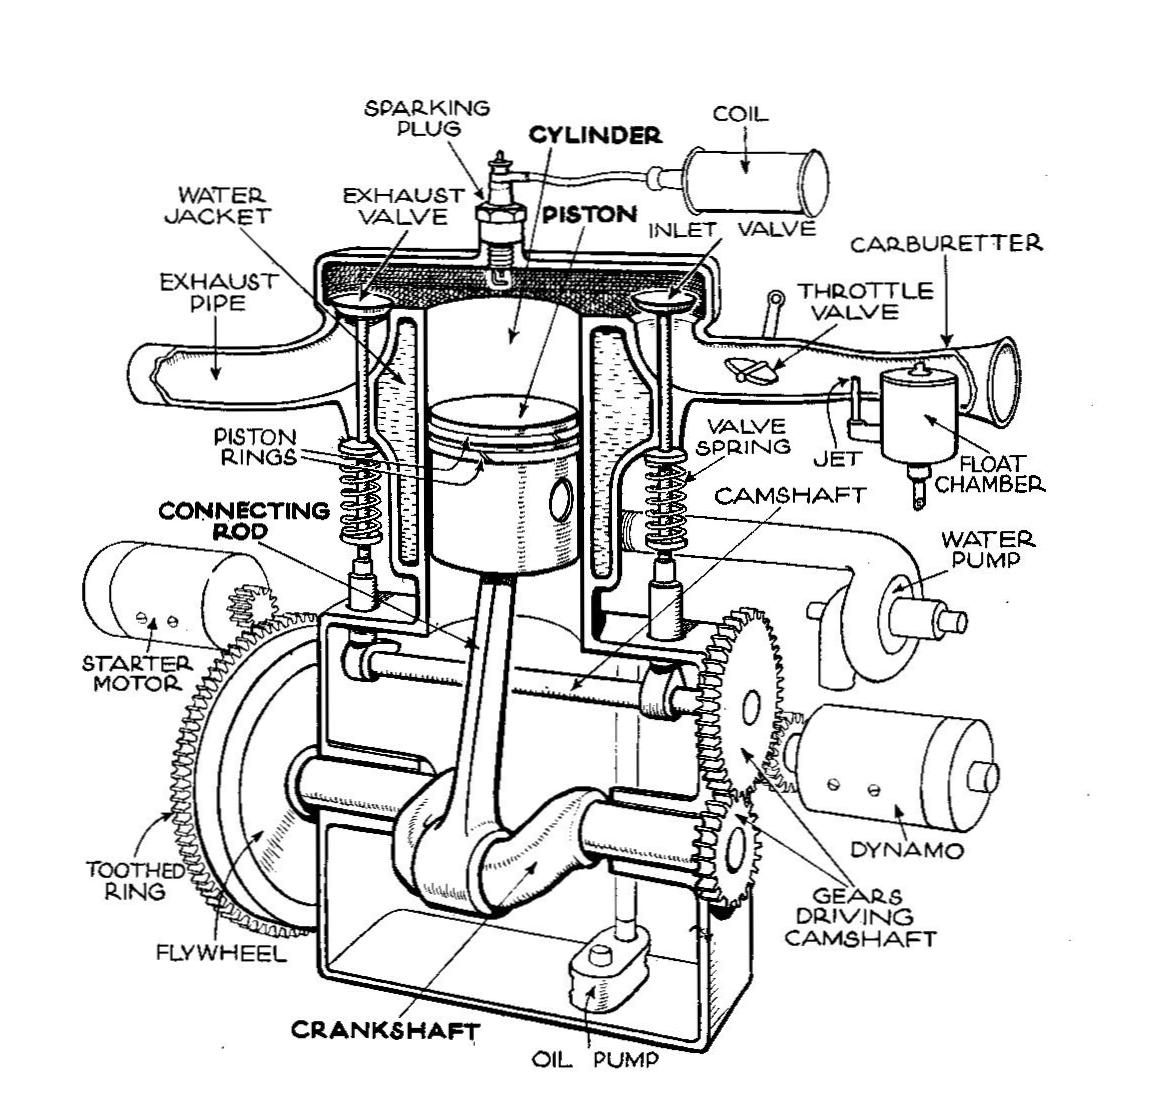 File:Single Cylinder_T Head_engine_(Autocar_Handbook,_13th_ed,_1935) on 4 Cyl Engine Cutaway